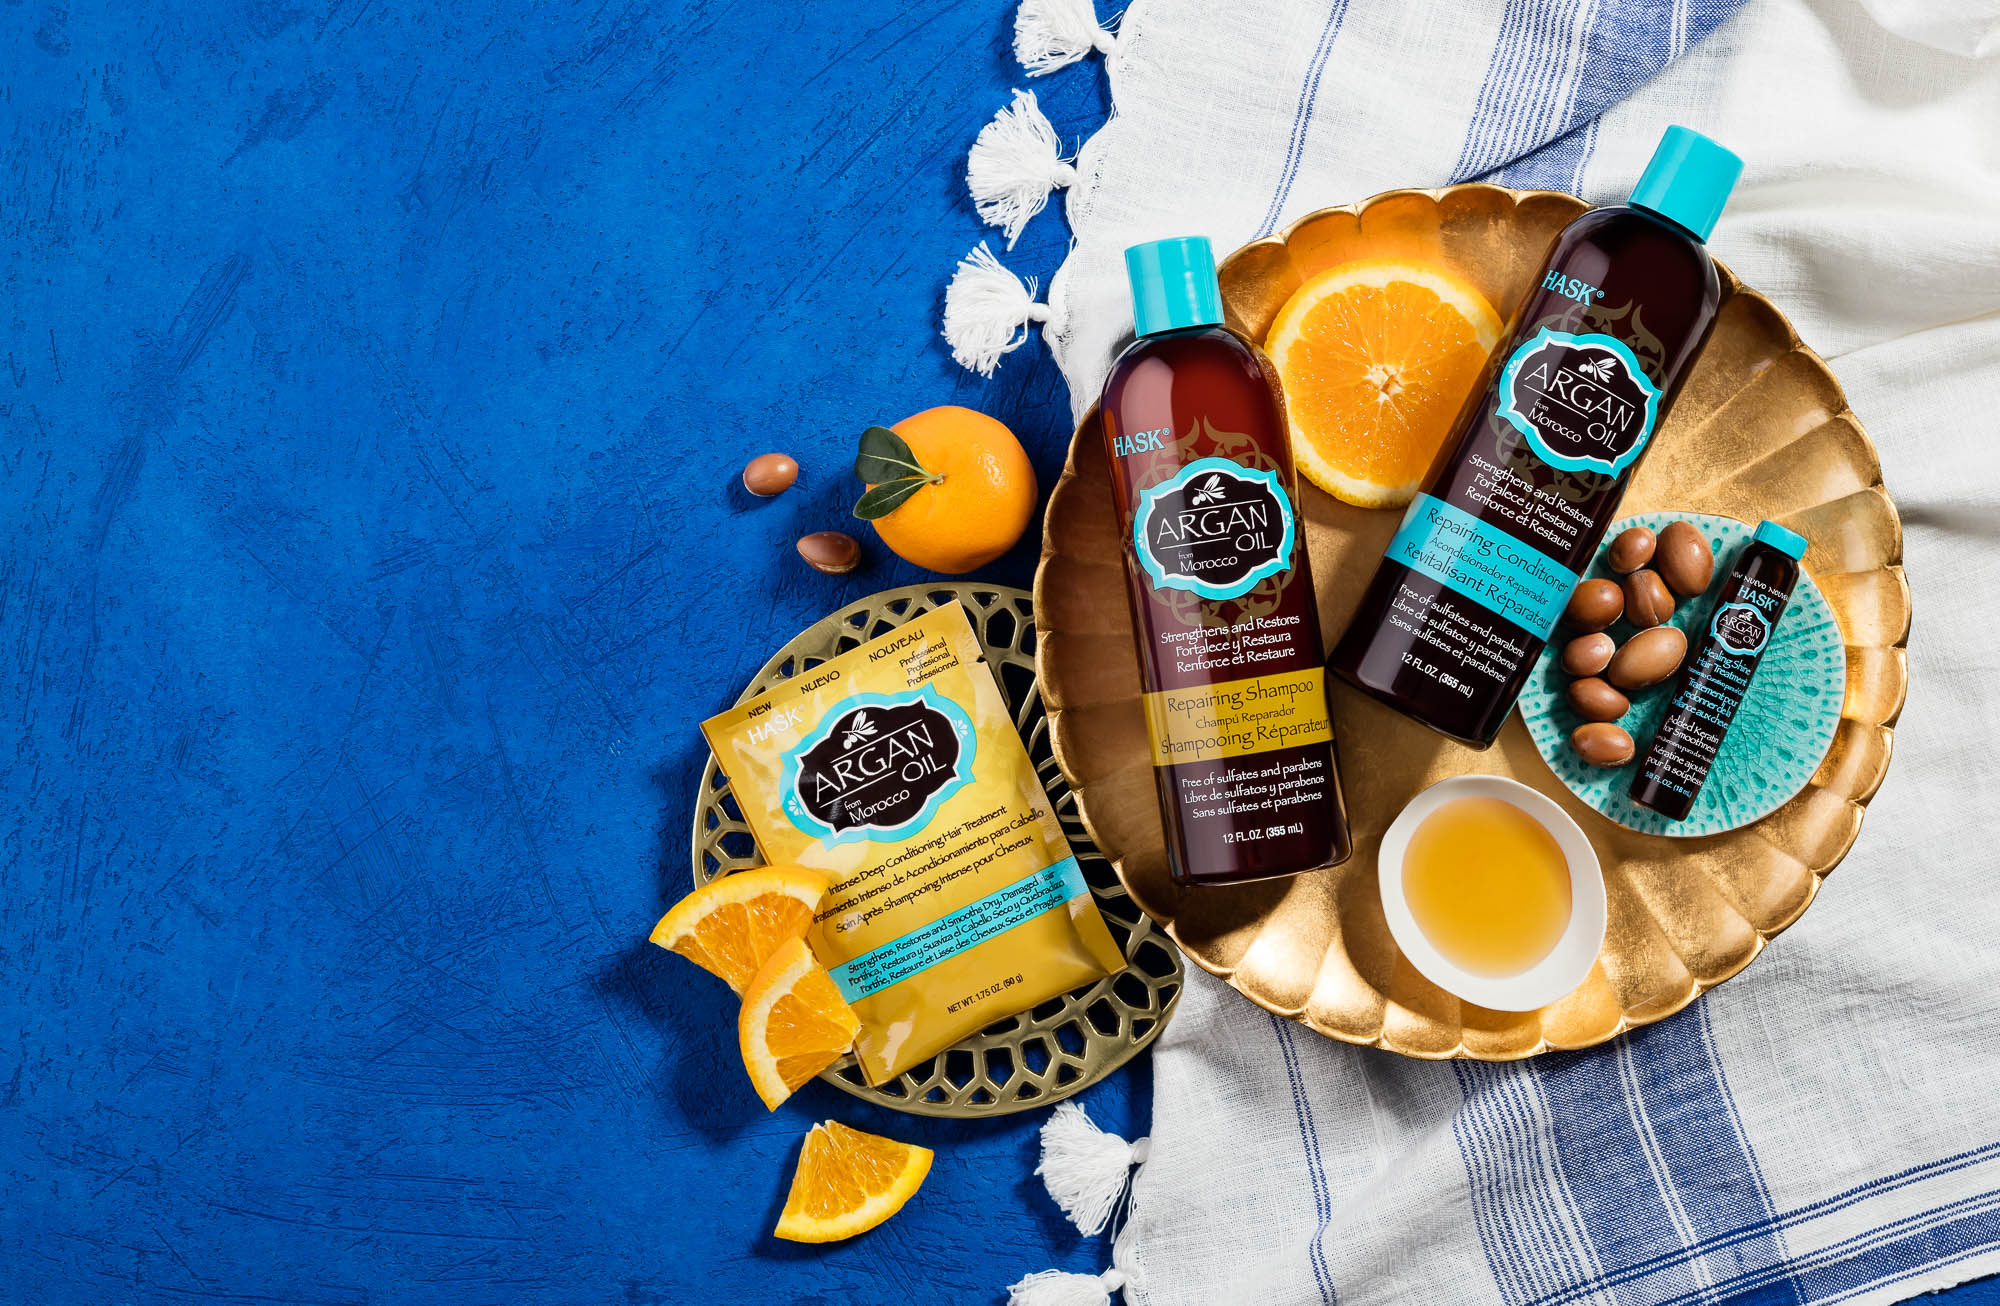 product photographer cosmetics photography lifestyle still life photography with argan oil shampoo and conditioner